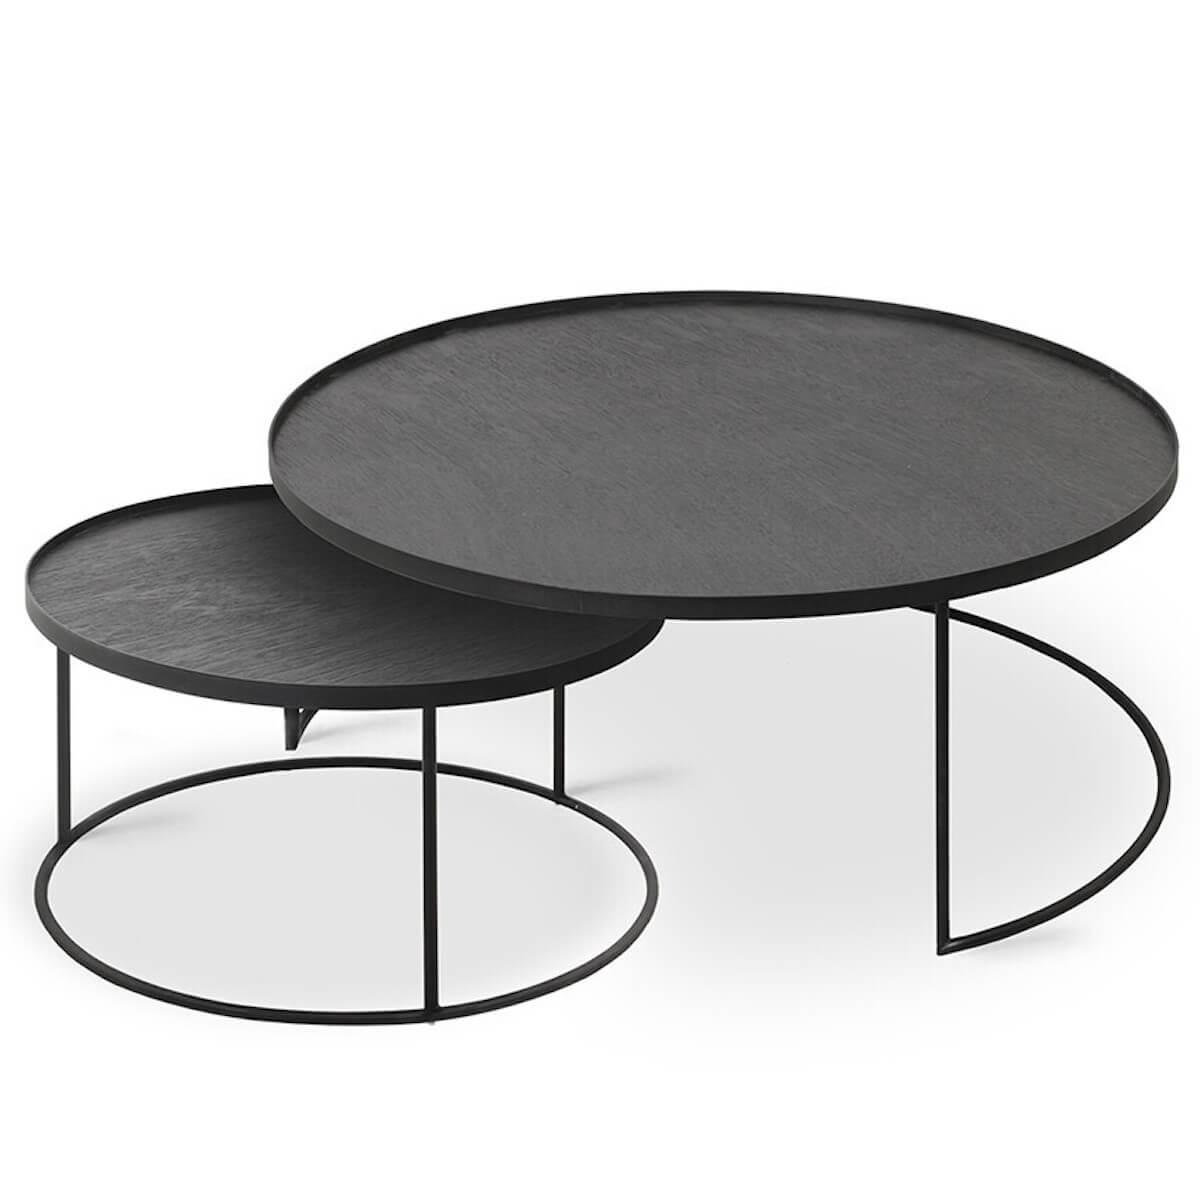 Set 2 tables d'appoint rond L-XL TRAY Ethnicraft